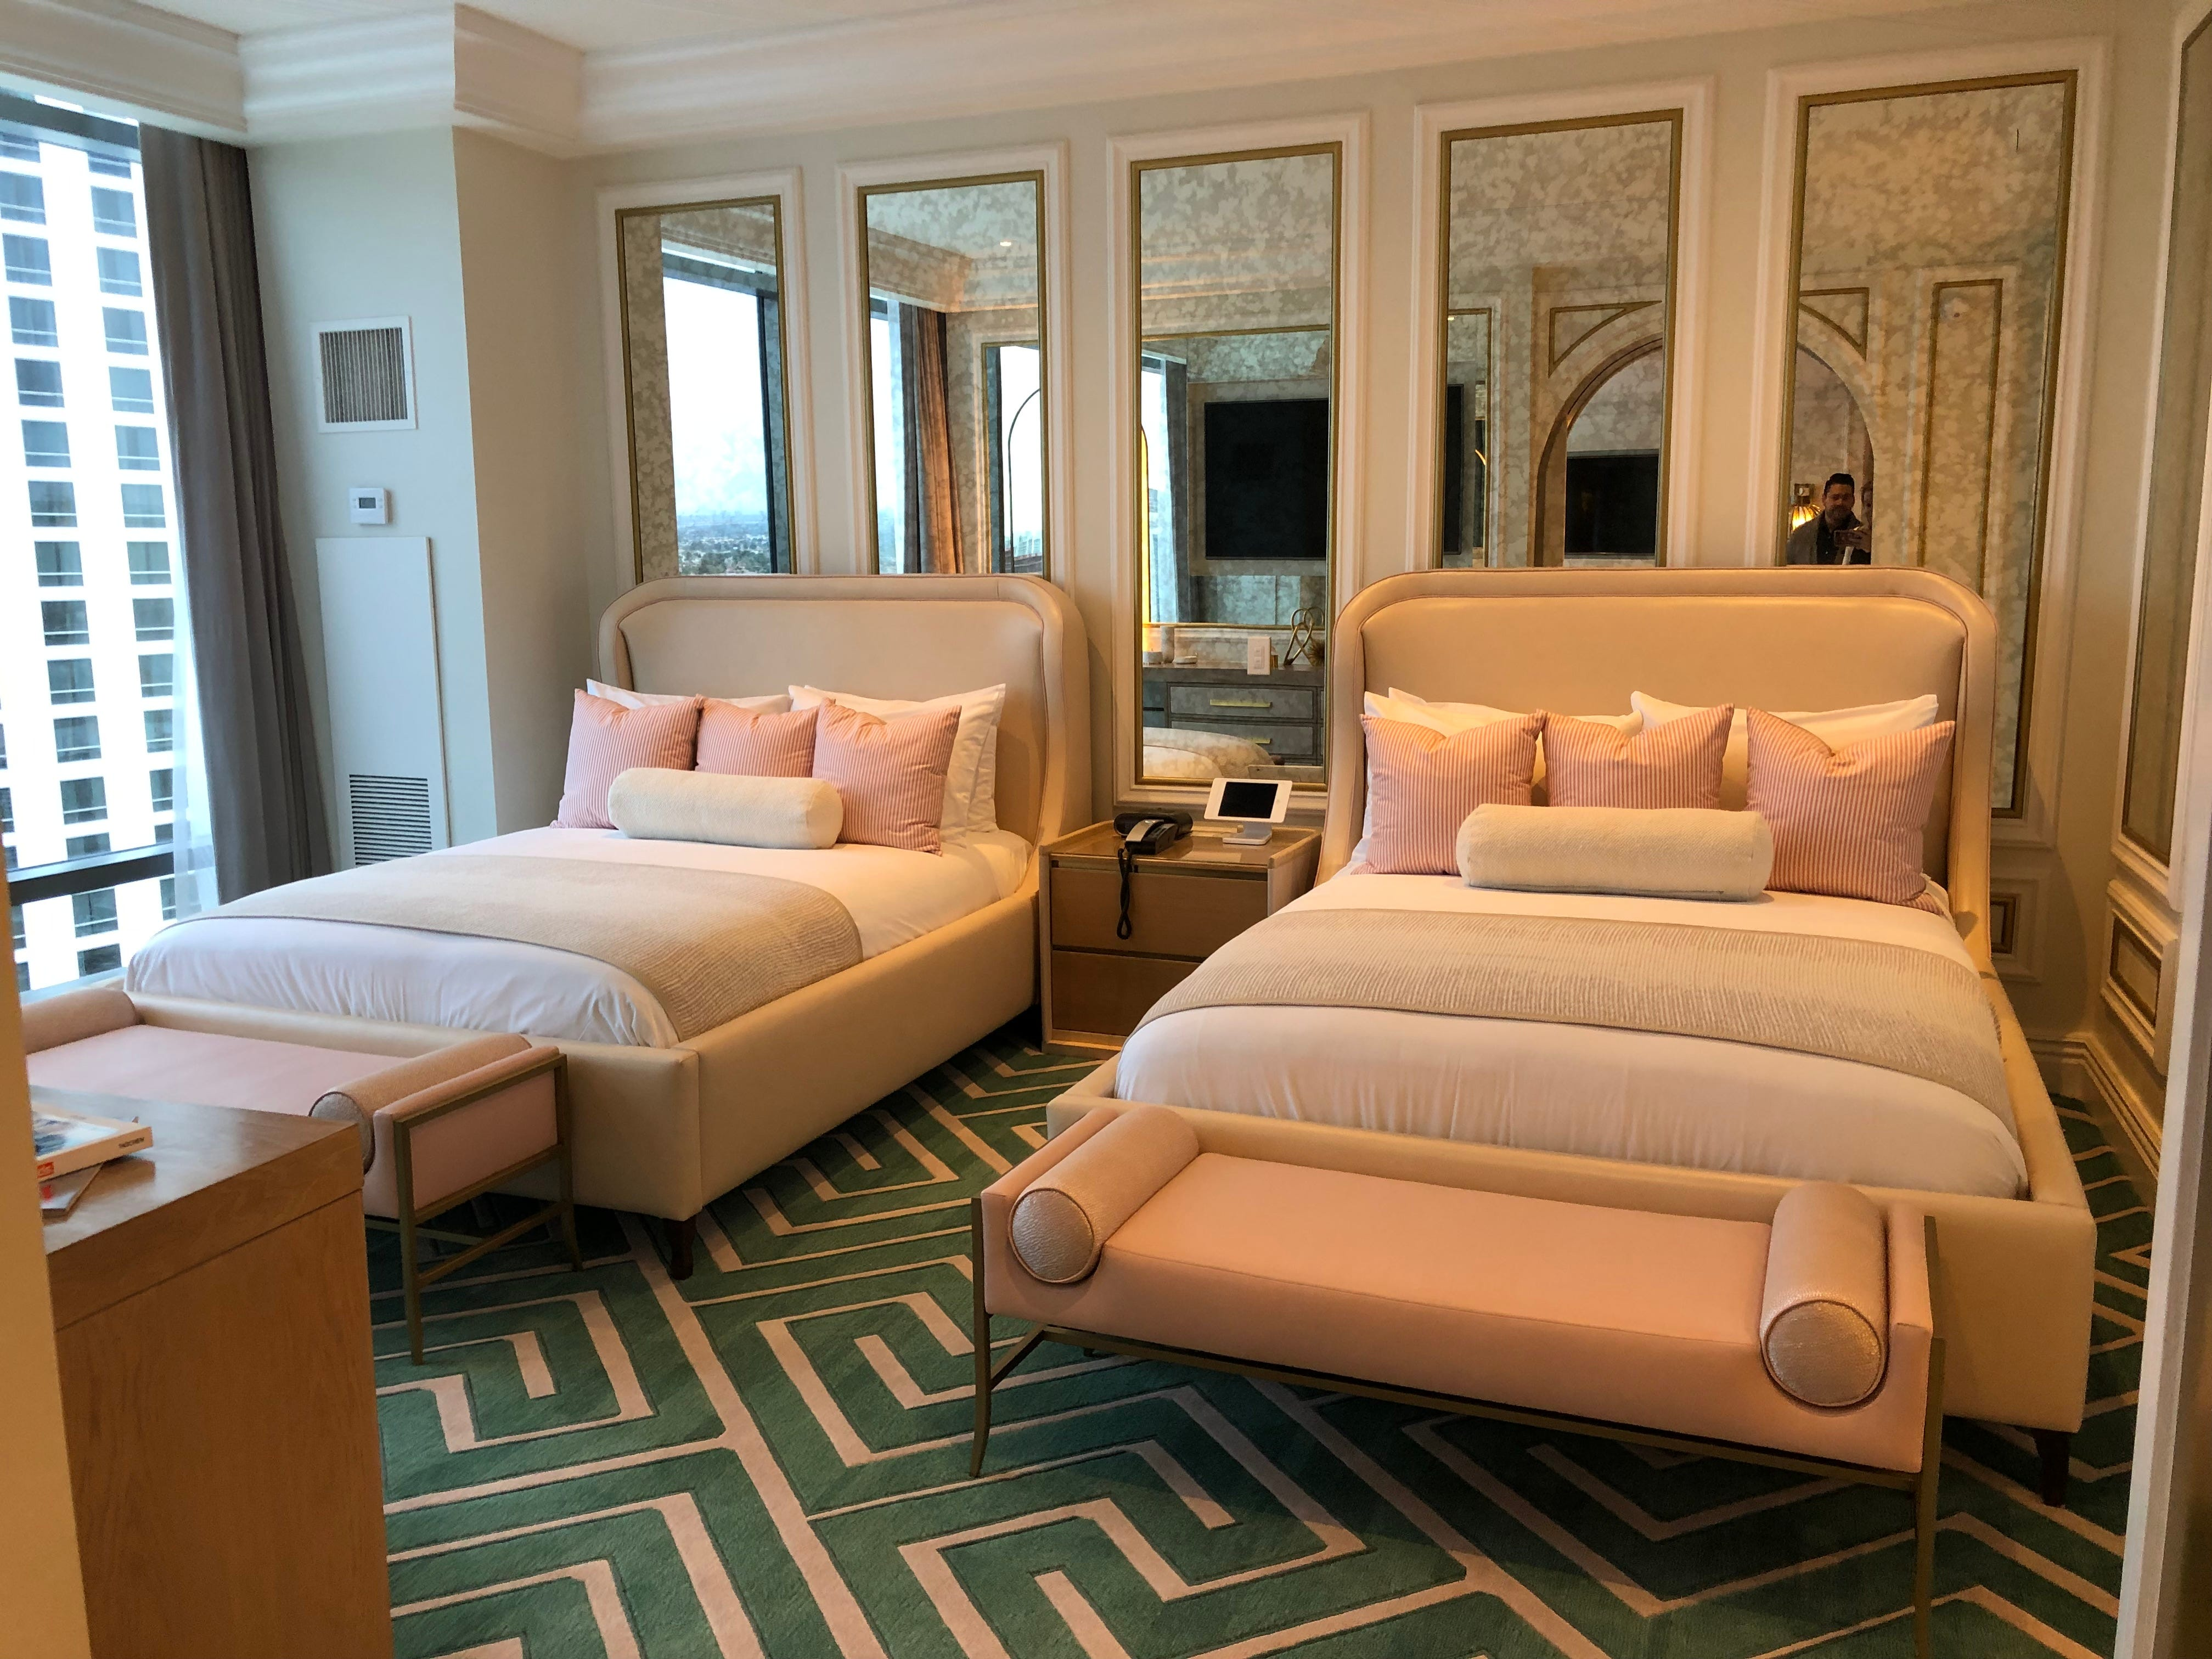 Bedroom of the suite decorated by Revolve at the Palms Casino Resort in Las Vegas.